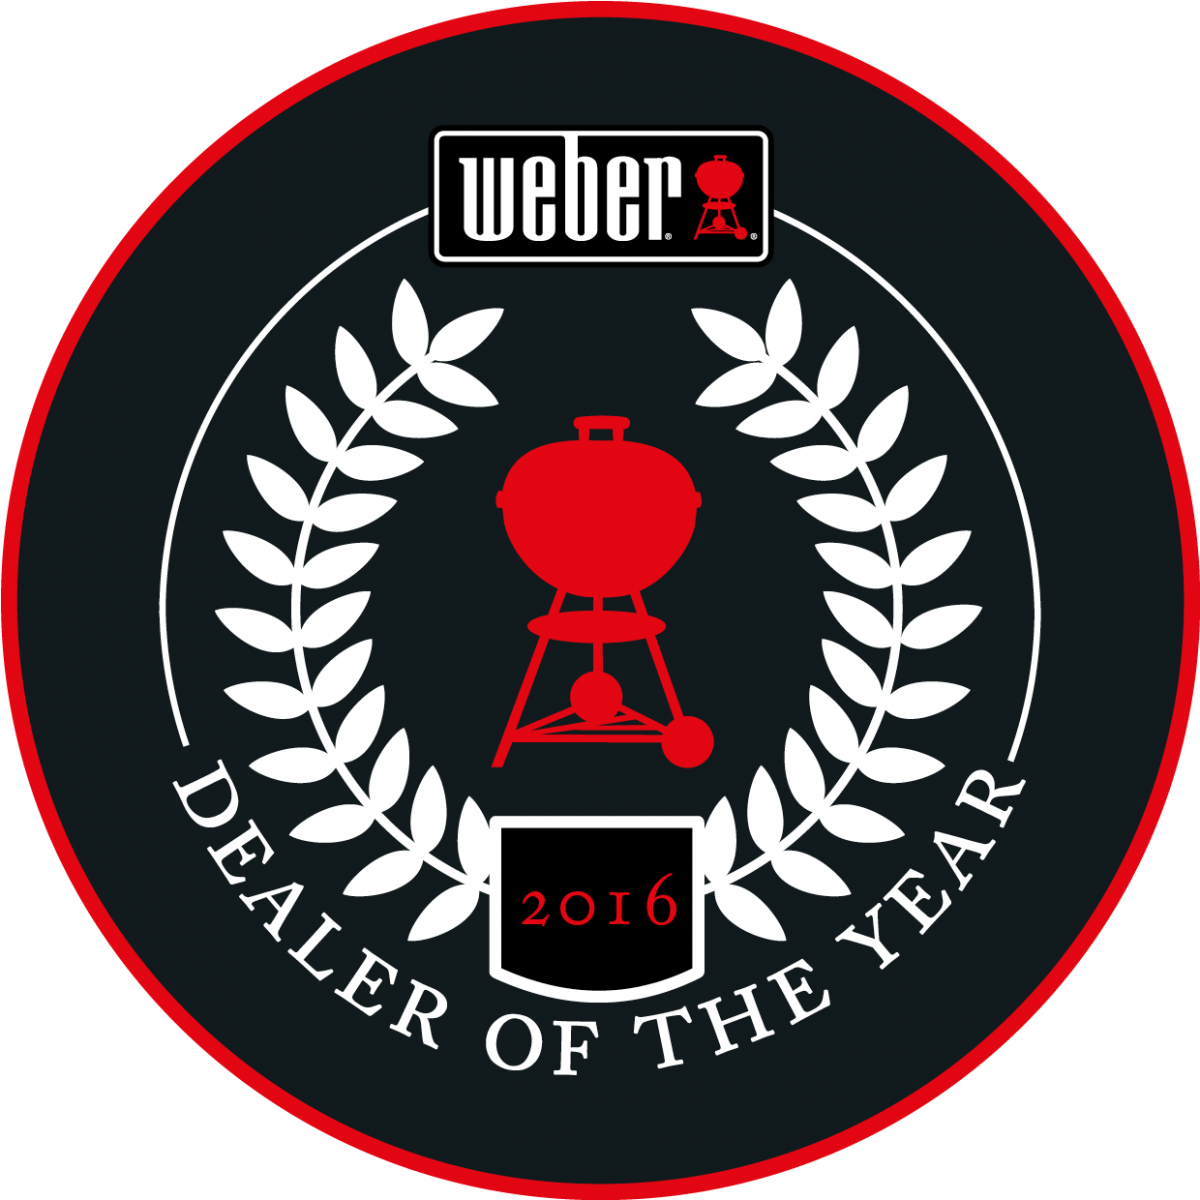 weber dealer of the year